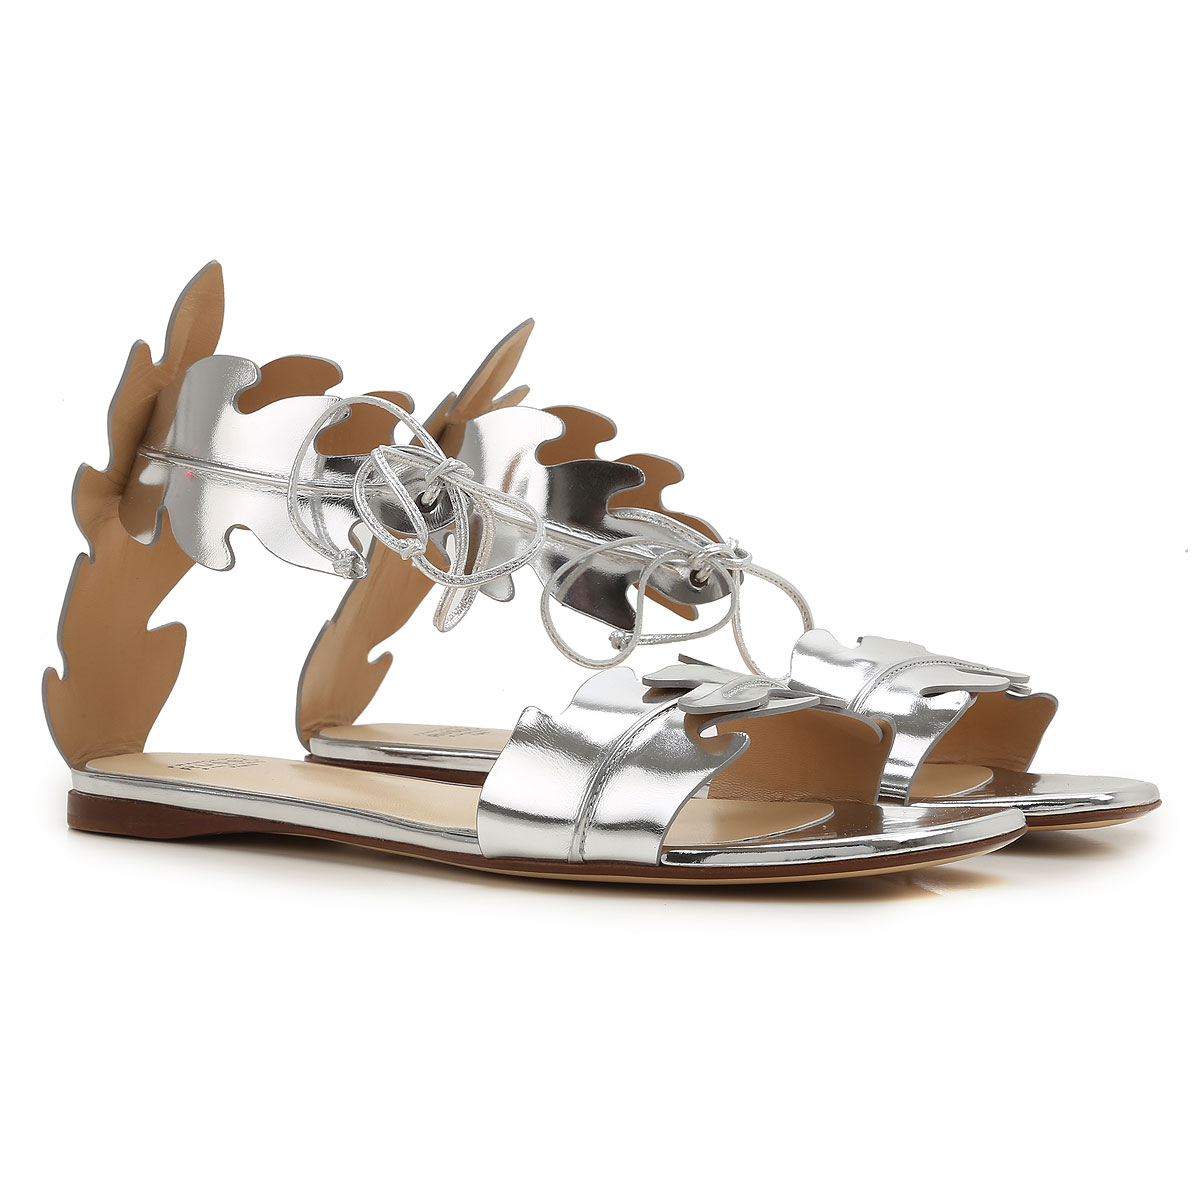 Francesco Russo Sandals for Women On Sale in Outlet, Silver, Leather, 2019, 36.5 38.5